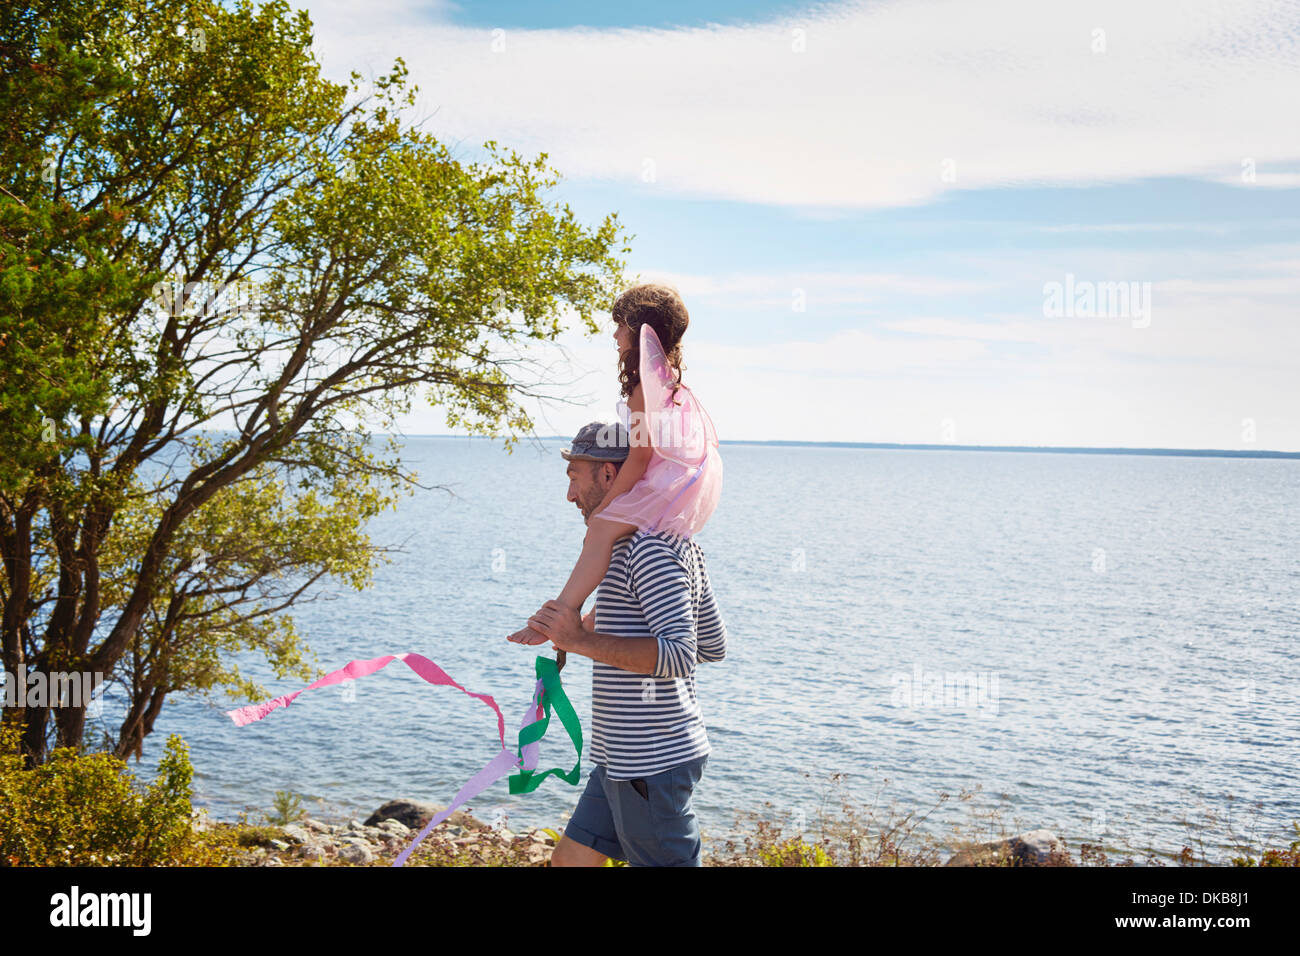 Father carrying daughter on shoulders by sea, Eggergrund, Sweden - Stock Image